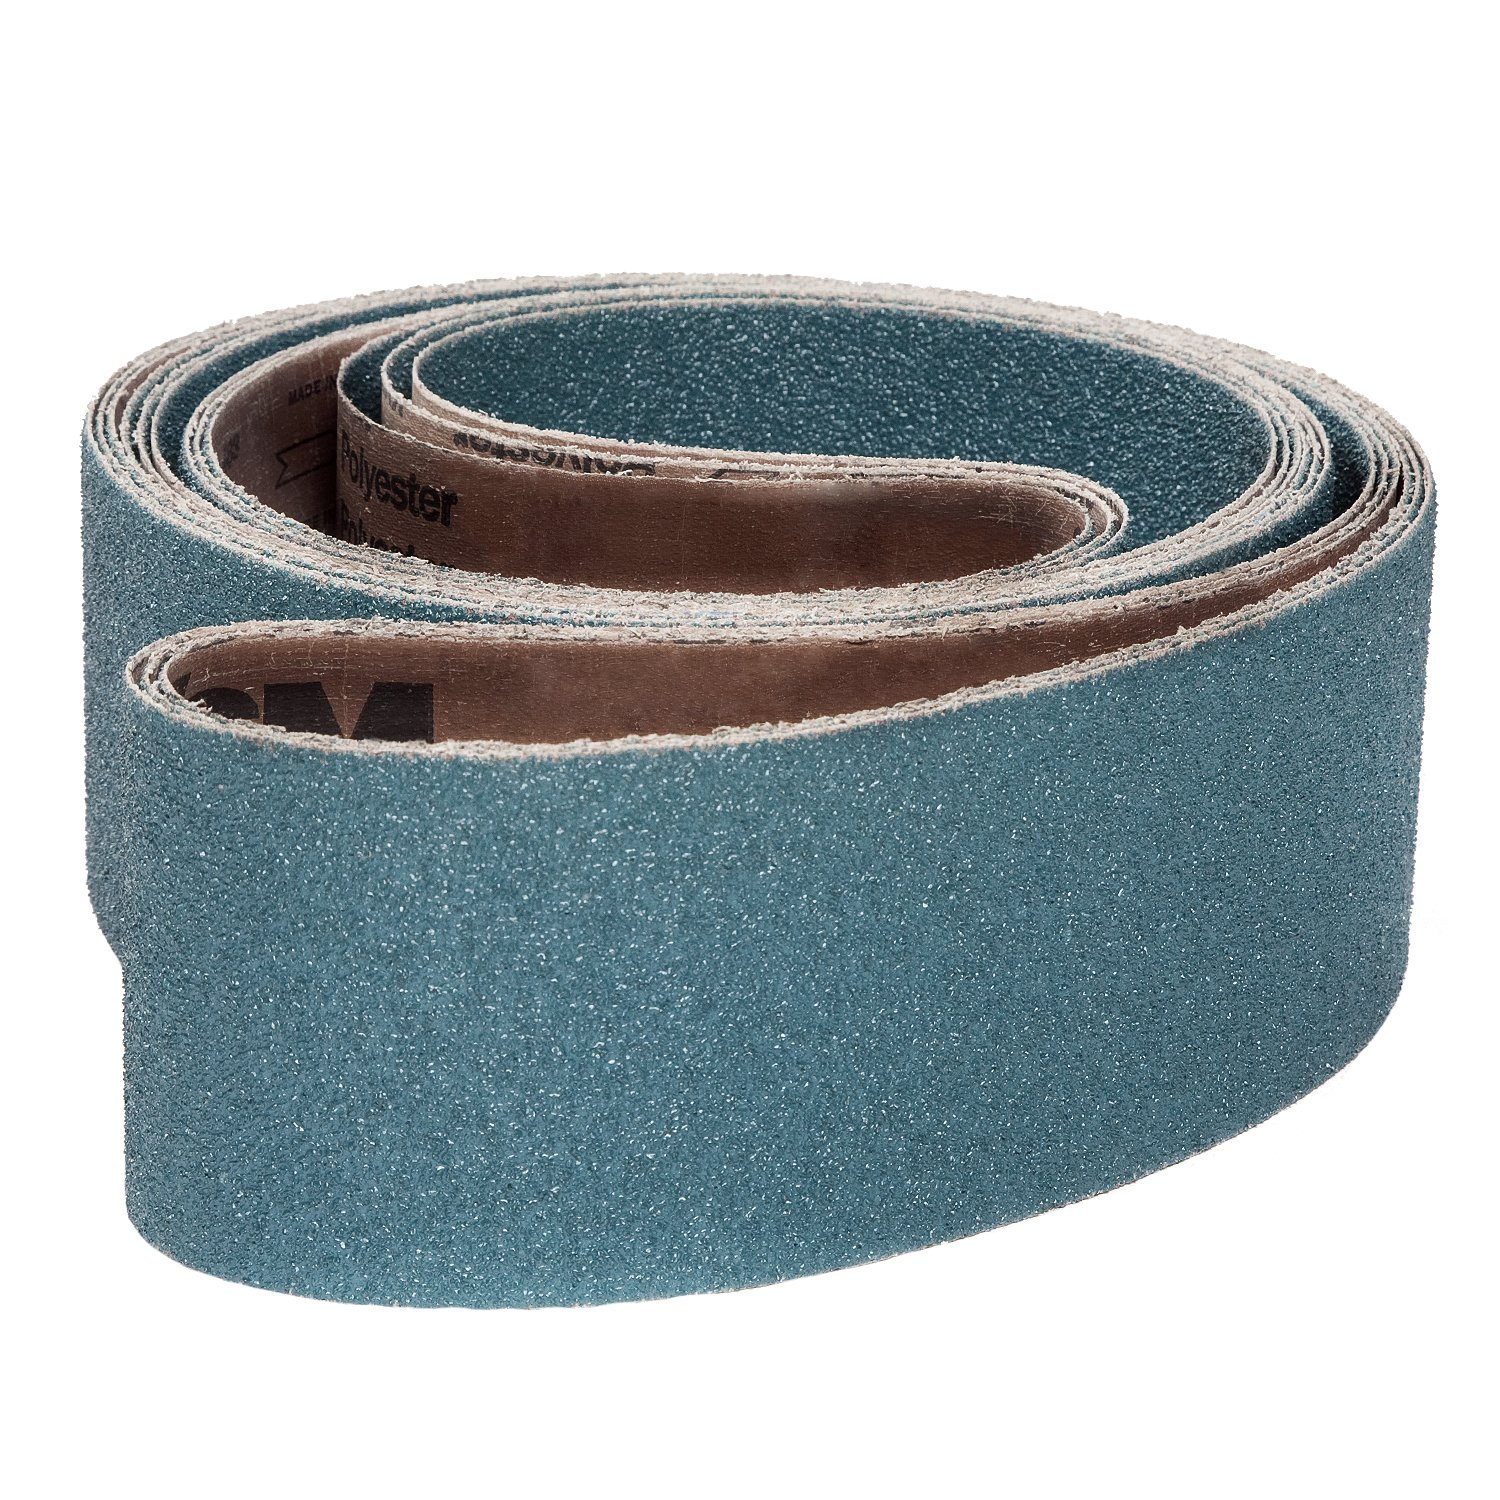 0.5 Wide x 24 Long Weight Pack of 50 Medium Grade VSM 282241 Series XK870X 120 Grit Ceramic Alumina Abrasive Belt X